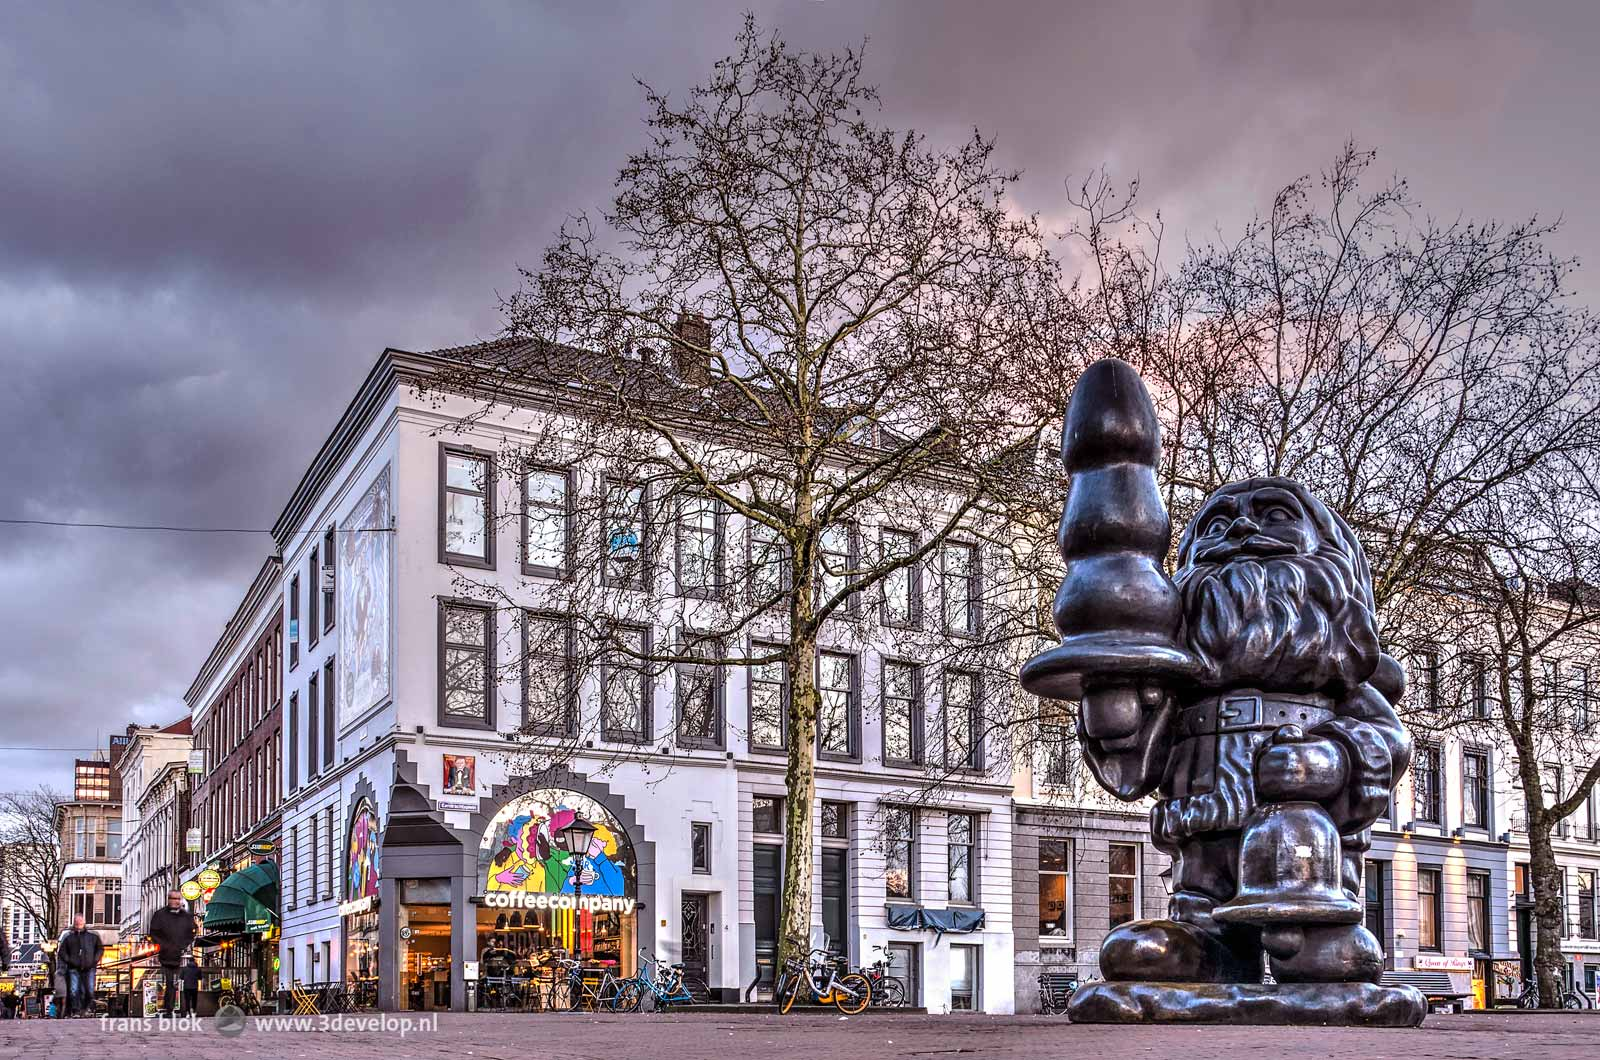 The sculpture Santa Claus, a.k.a. the Buttplug Gnome, by the American artist Paul McCarthy, on Eendrachtsplein in Rotterdam